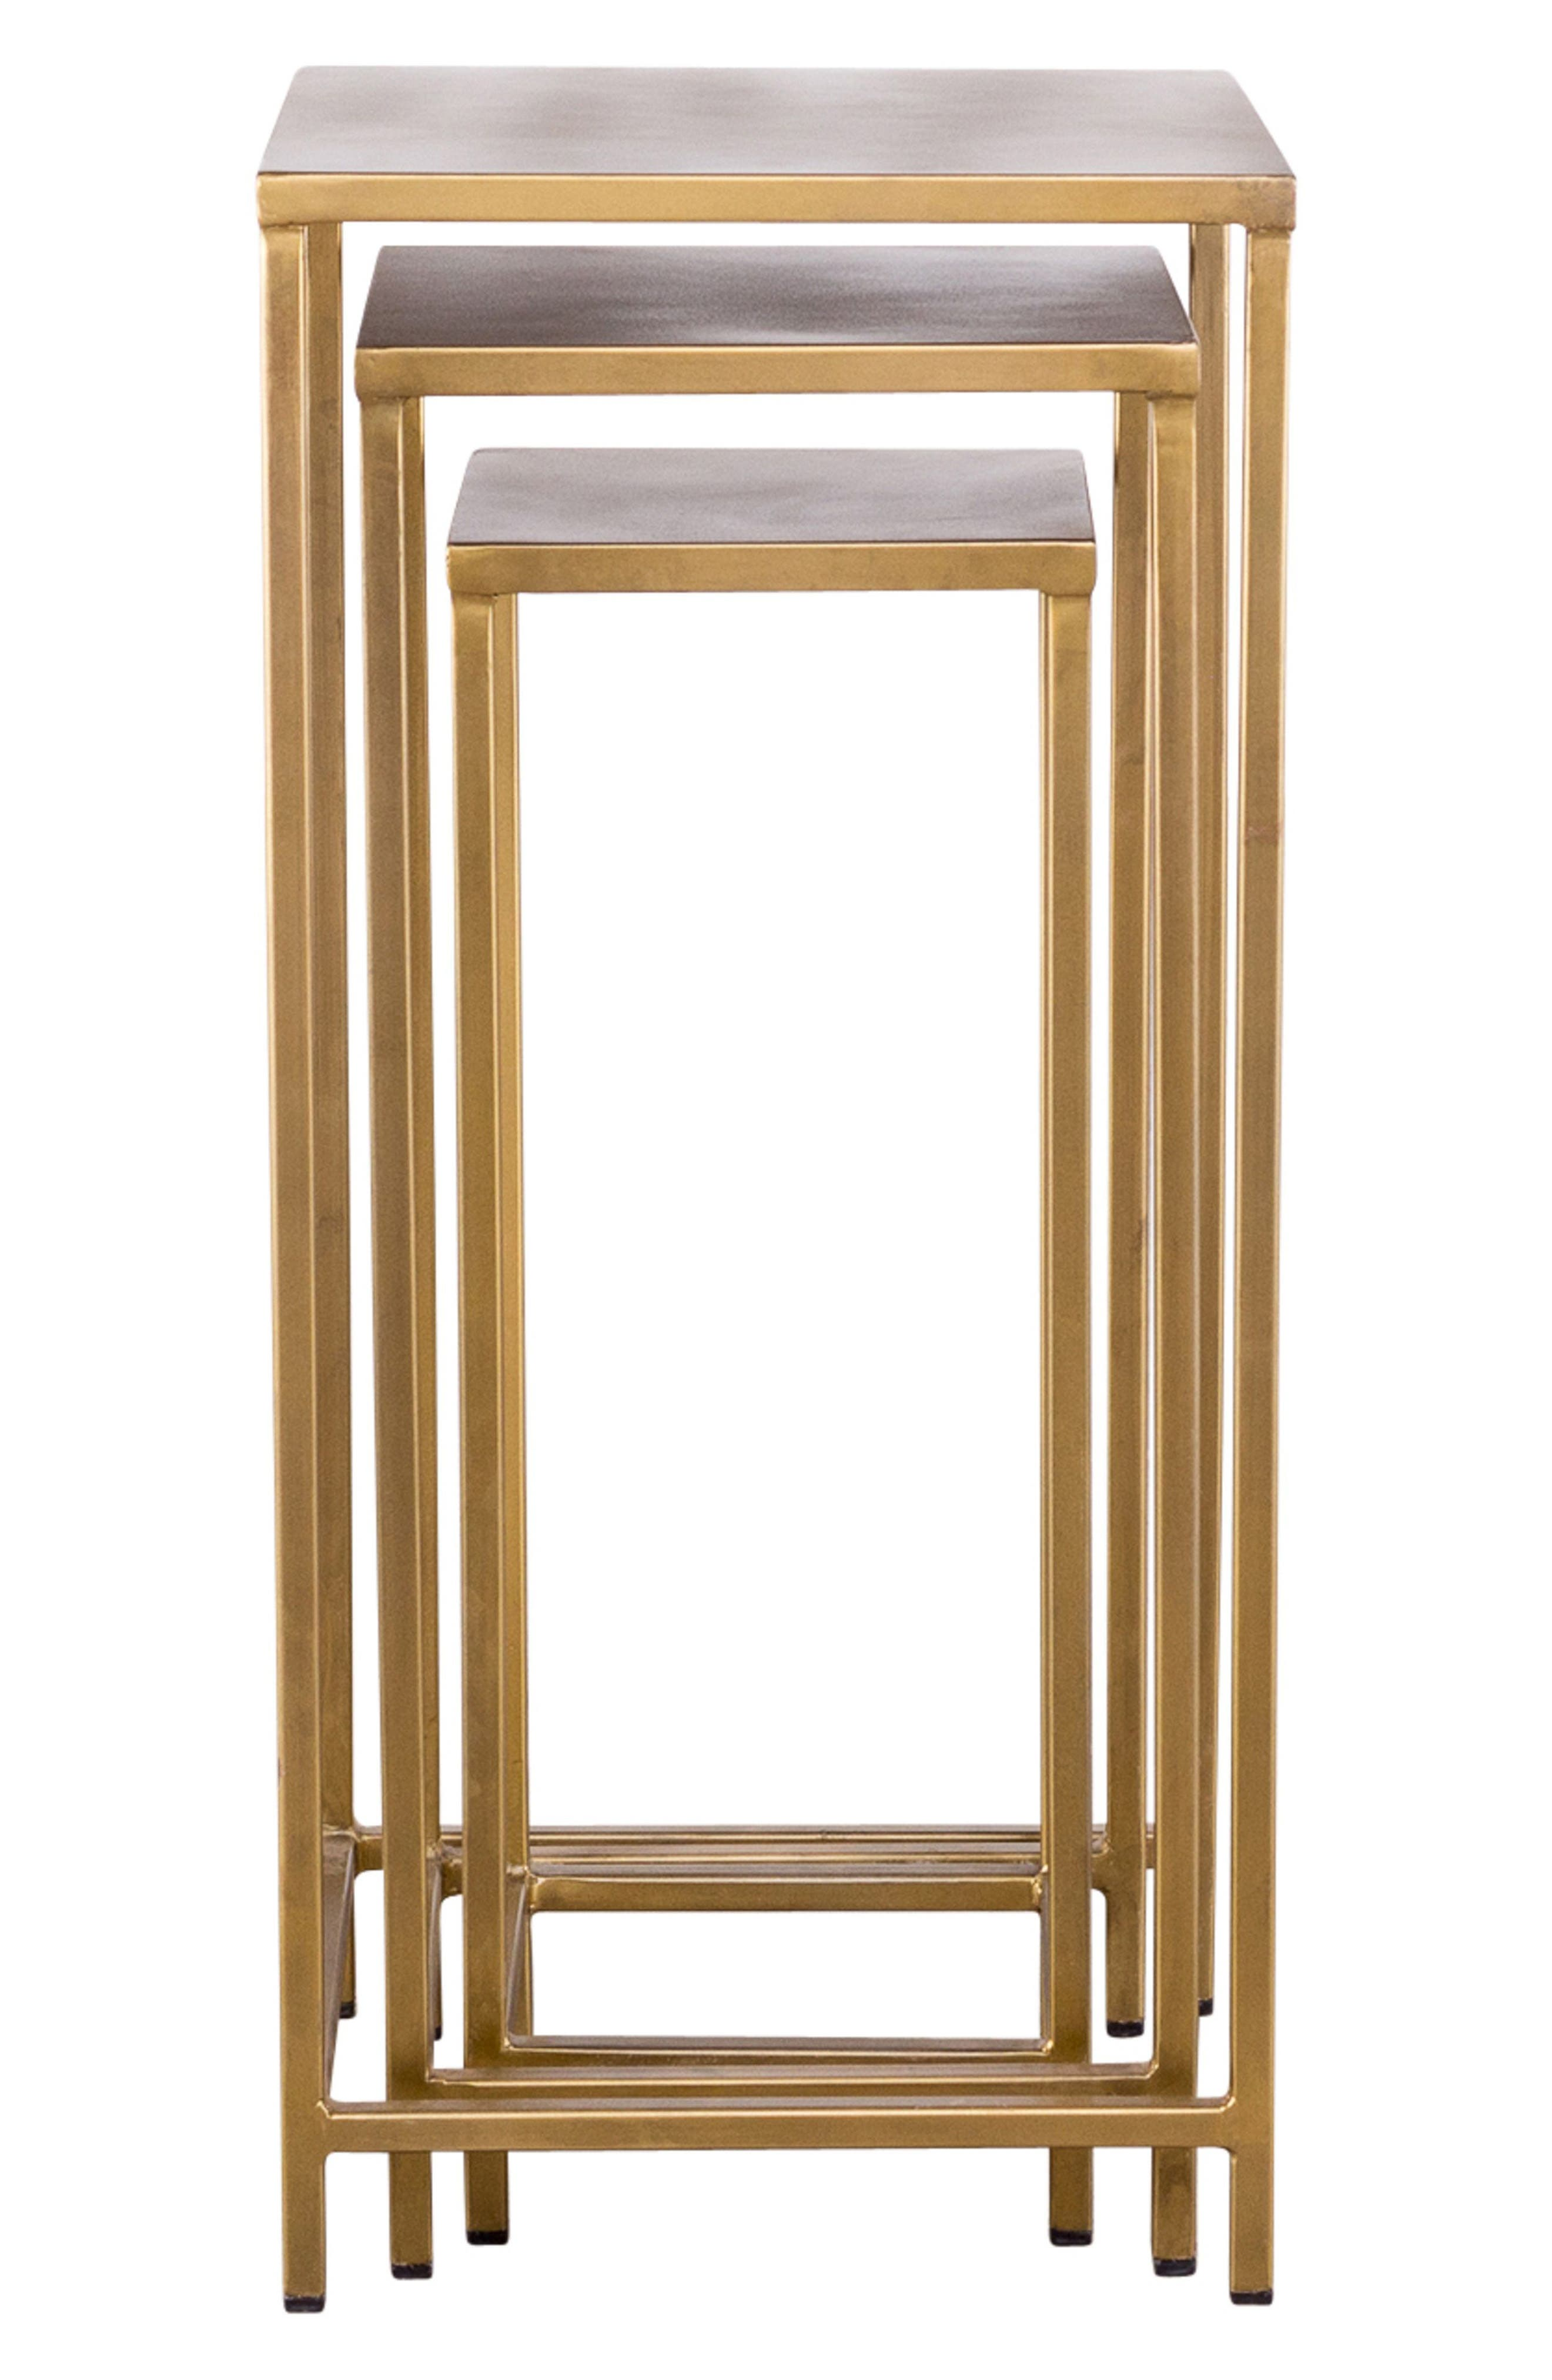 Pollock Set of 3 Tall Nesting Tables,                             Main thumbnail 1, color,                             Brass